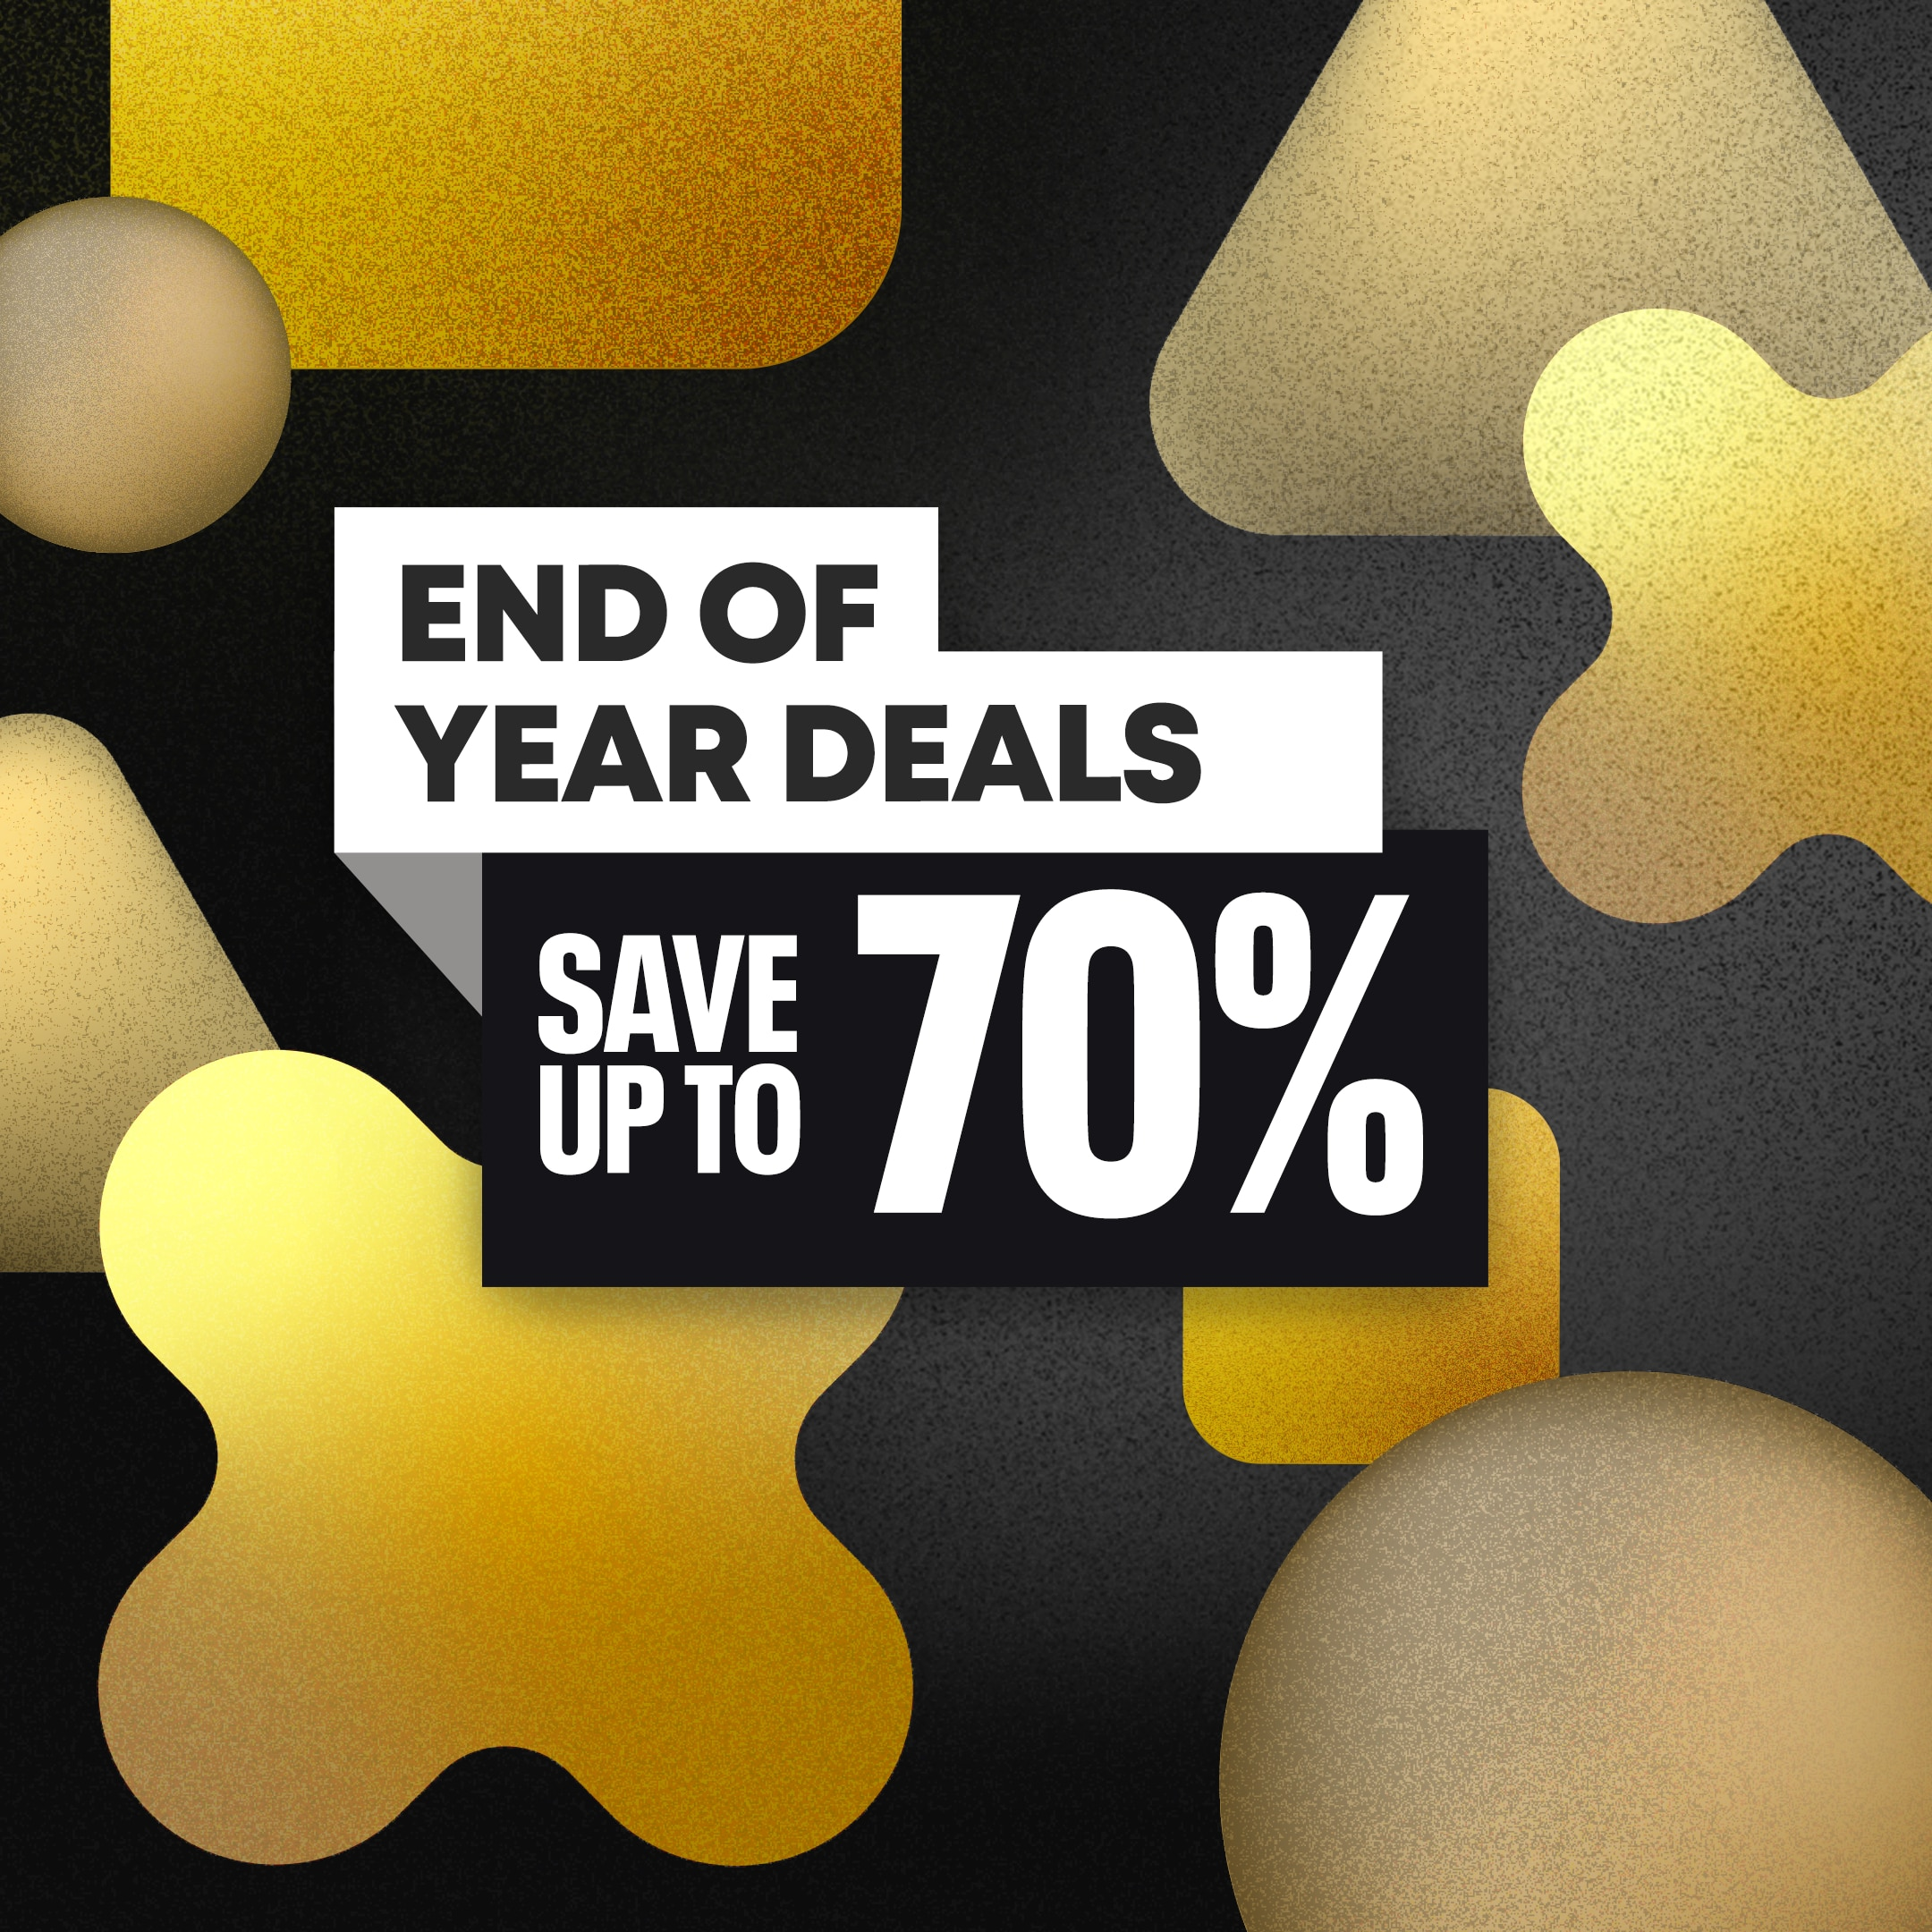 [PROMO] End of Year Deals